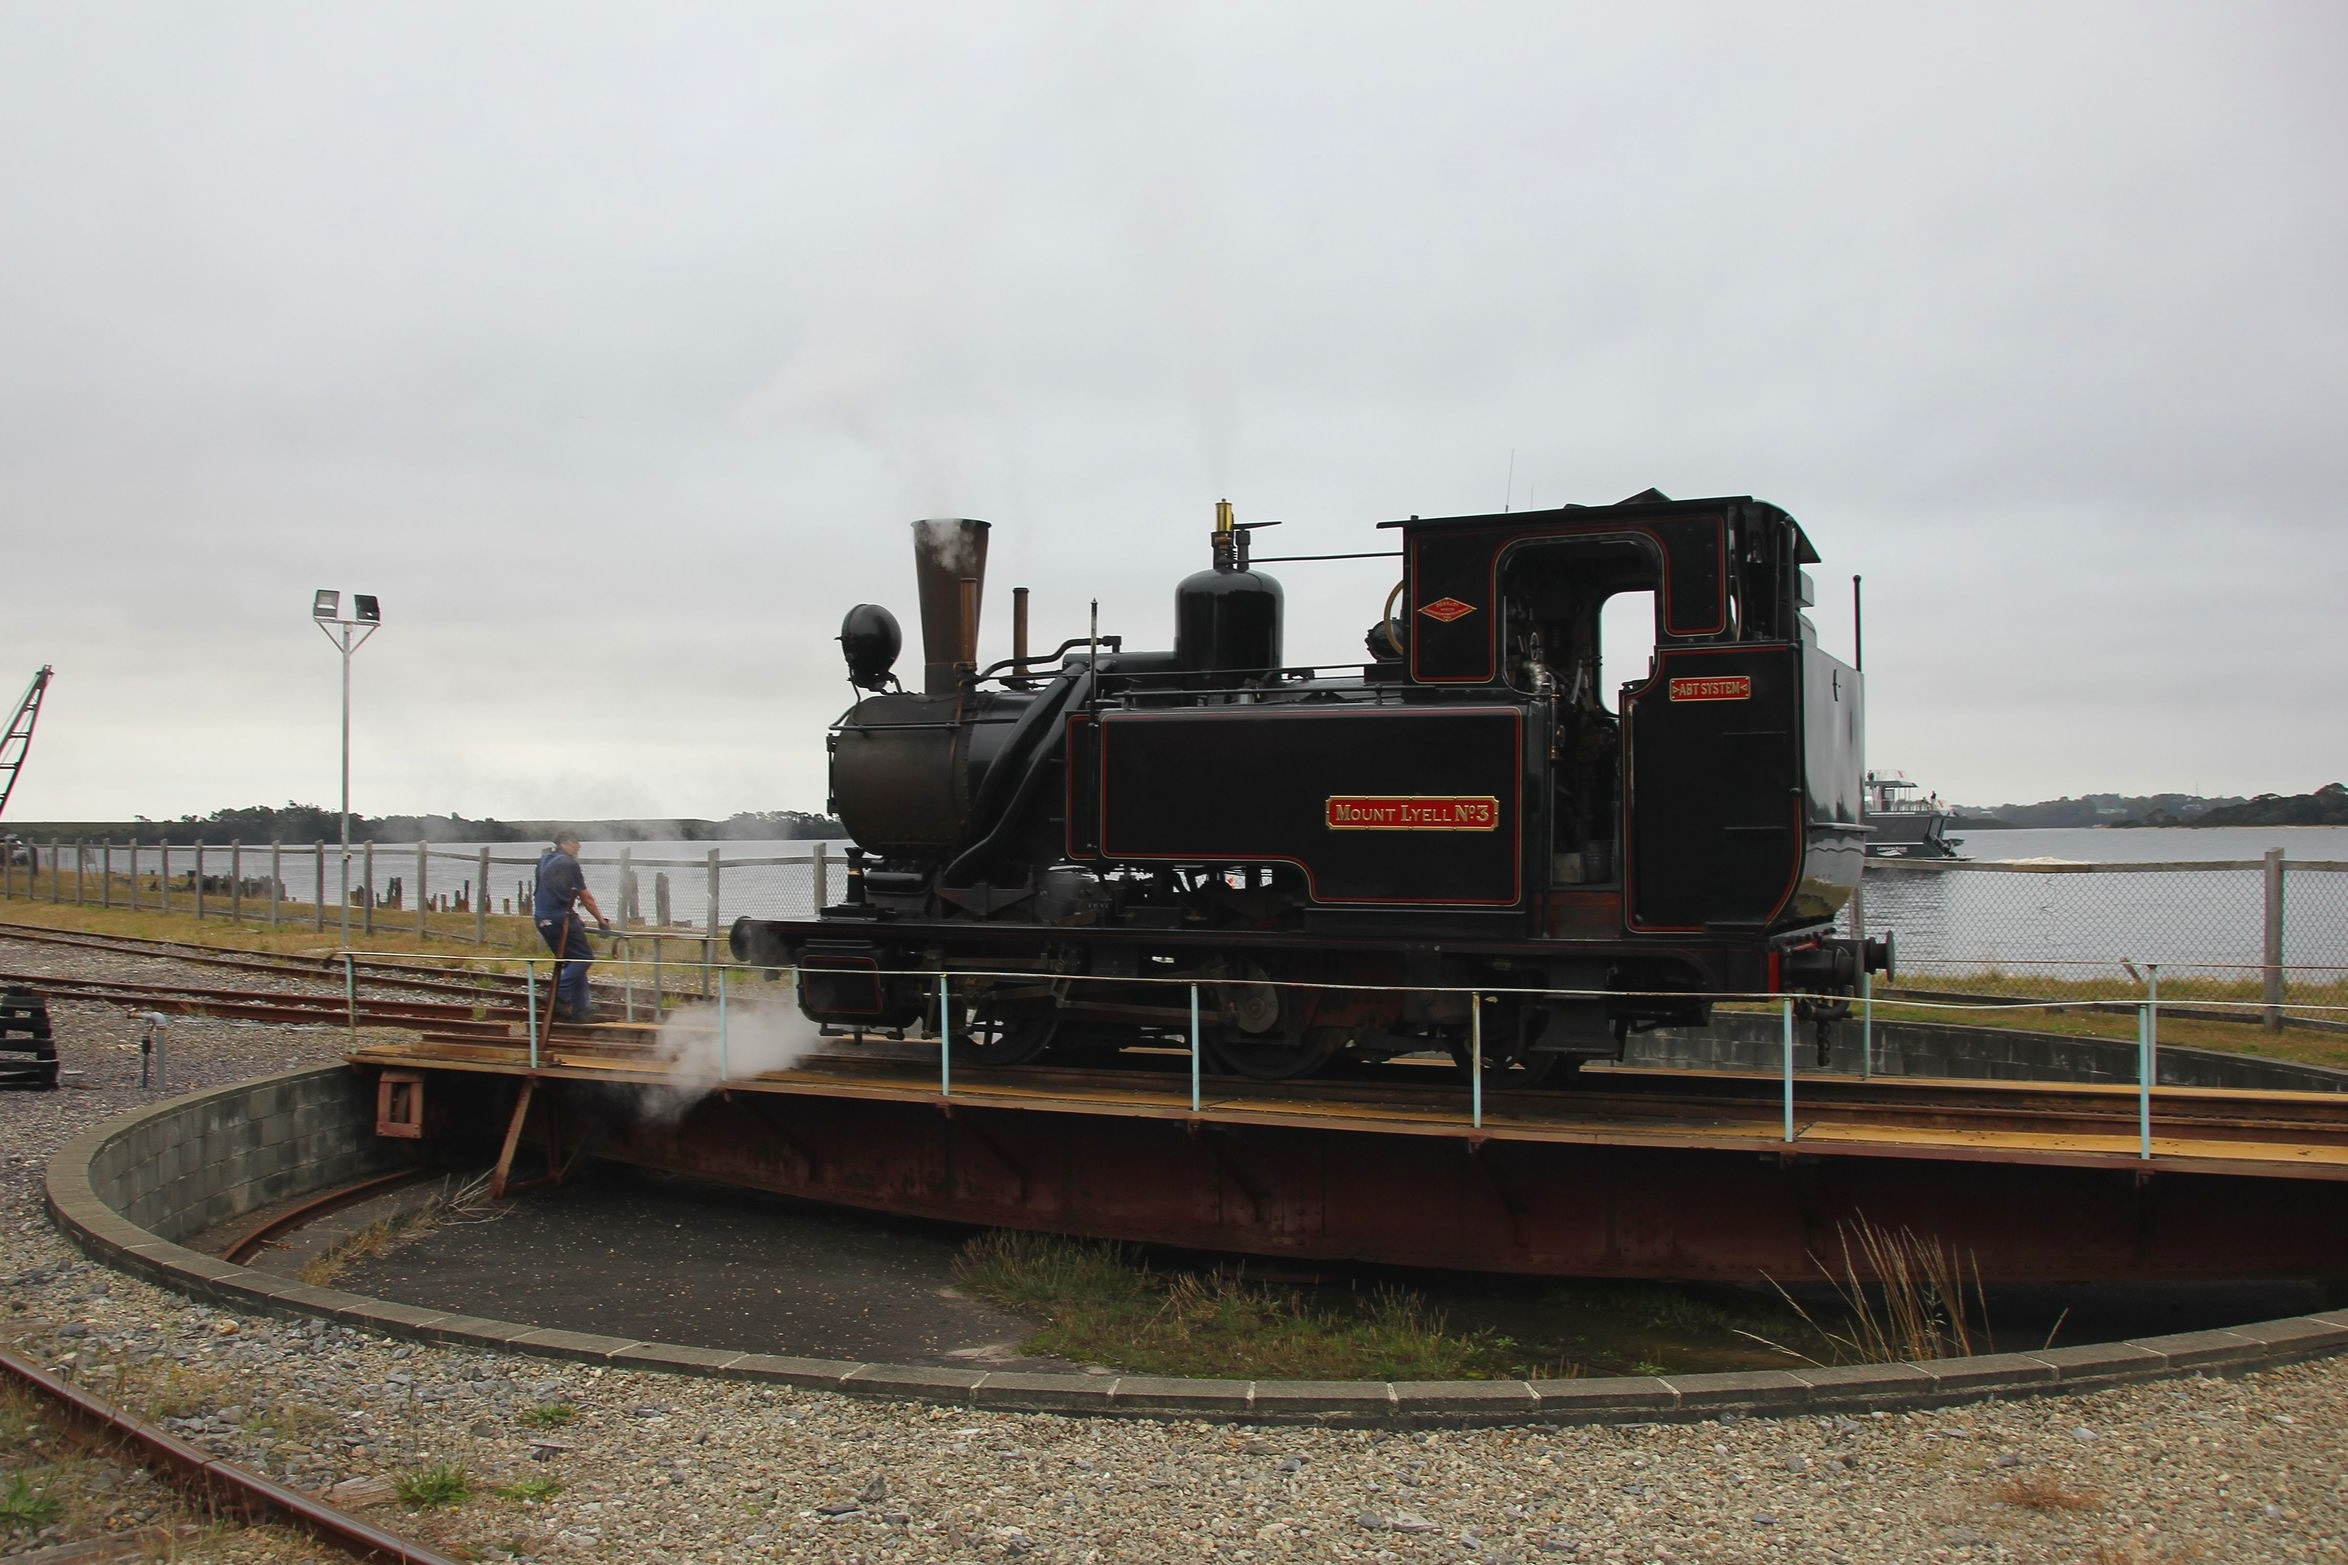 positioning the engine on the turntable